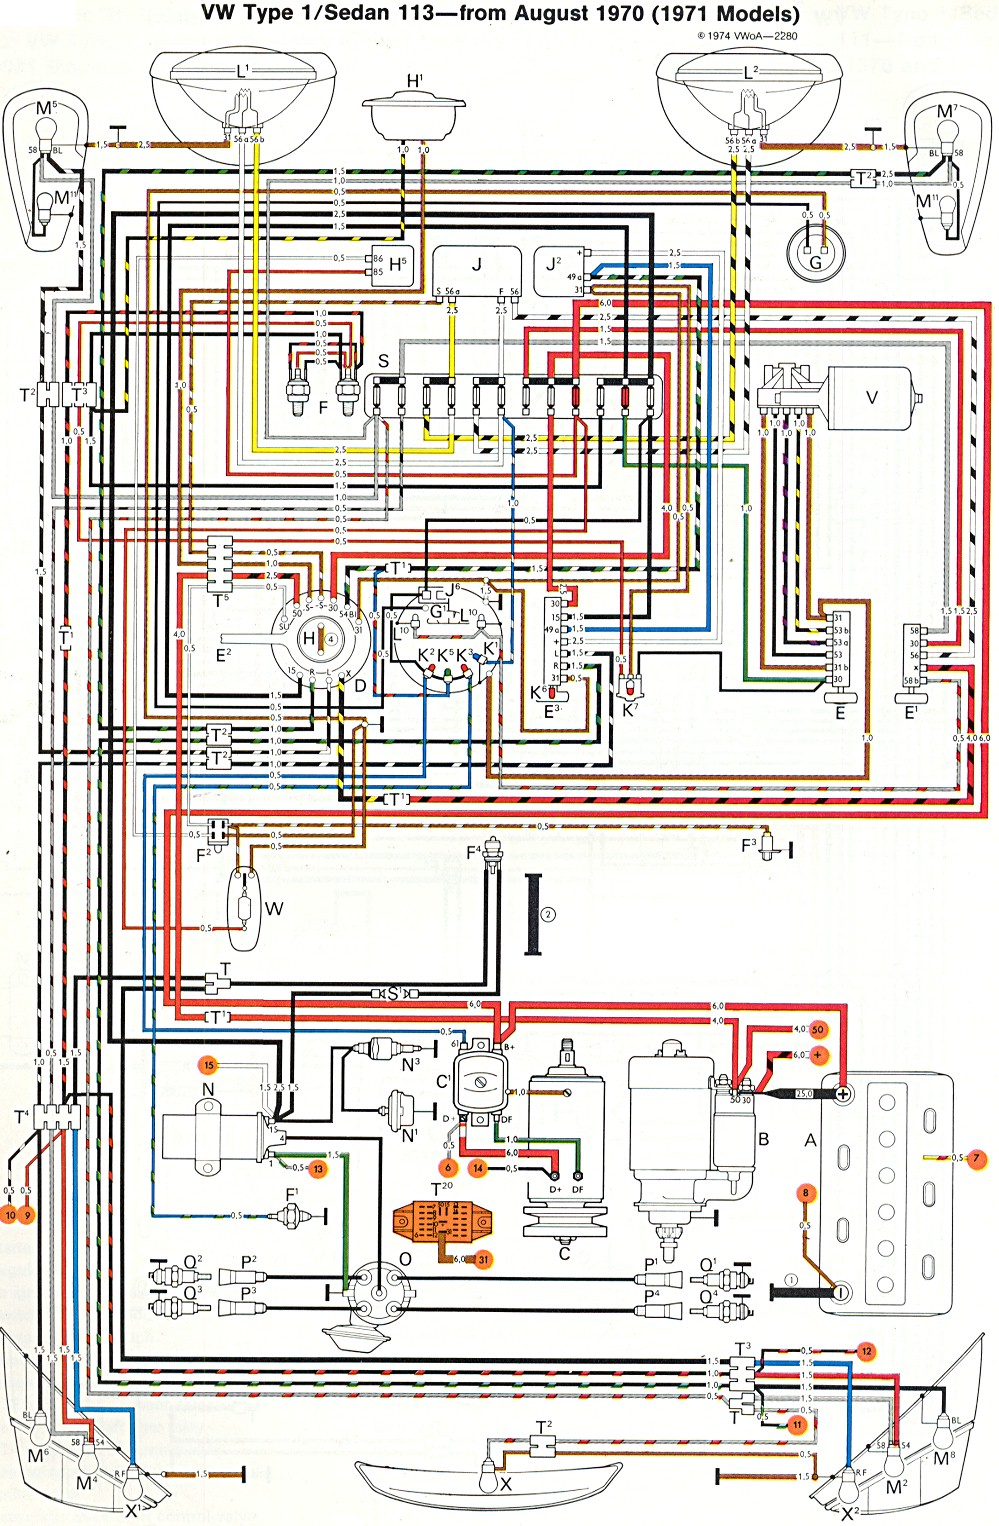 bug_super_71 1971 super beetle wiring diagram thegoldenbug com vw bug wiring diagram at webbmarketing.co